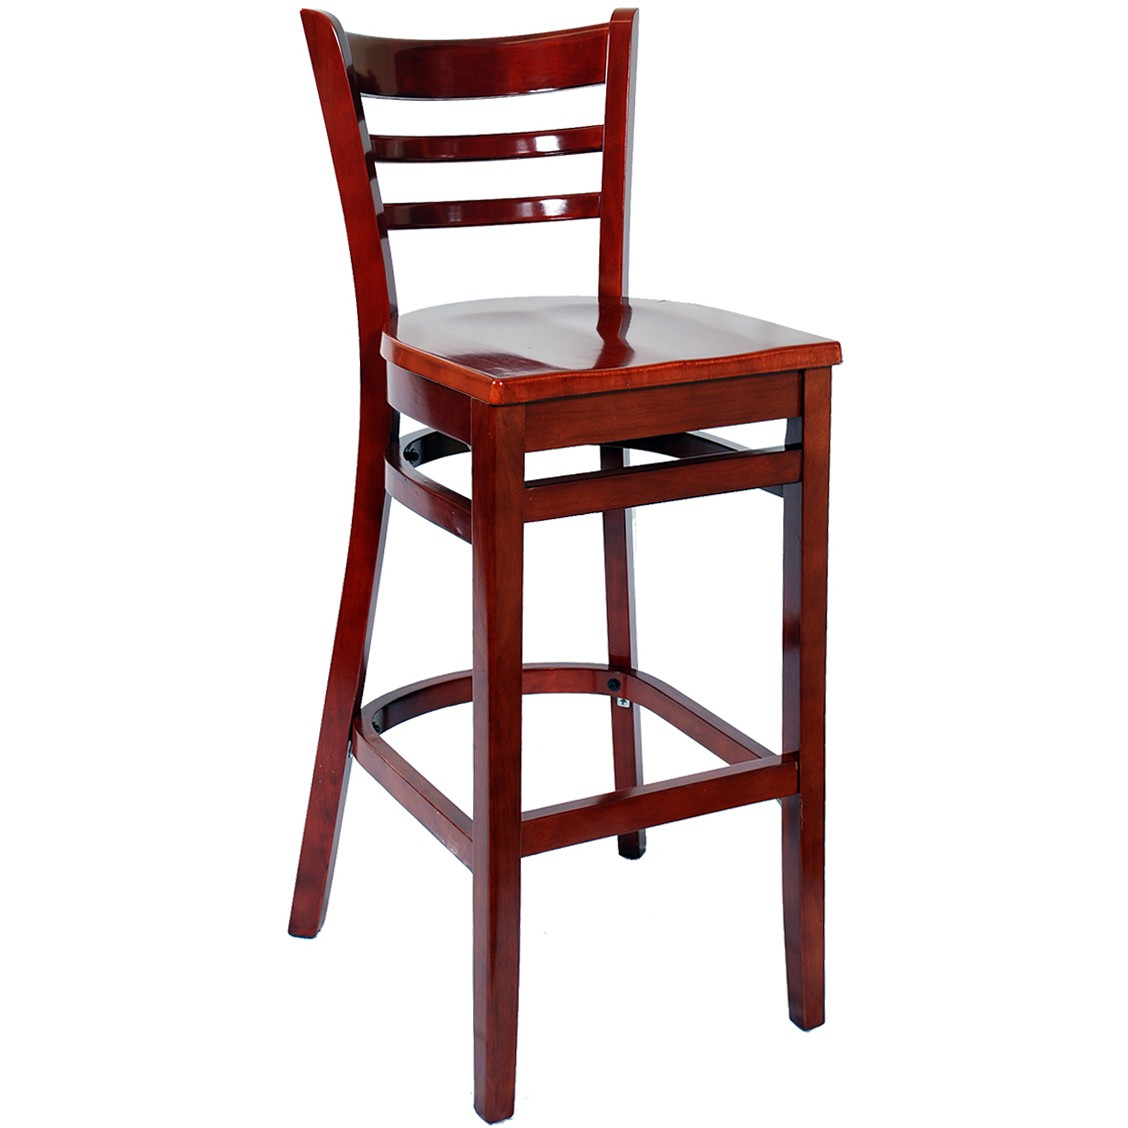 Ladder back wood bar stools